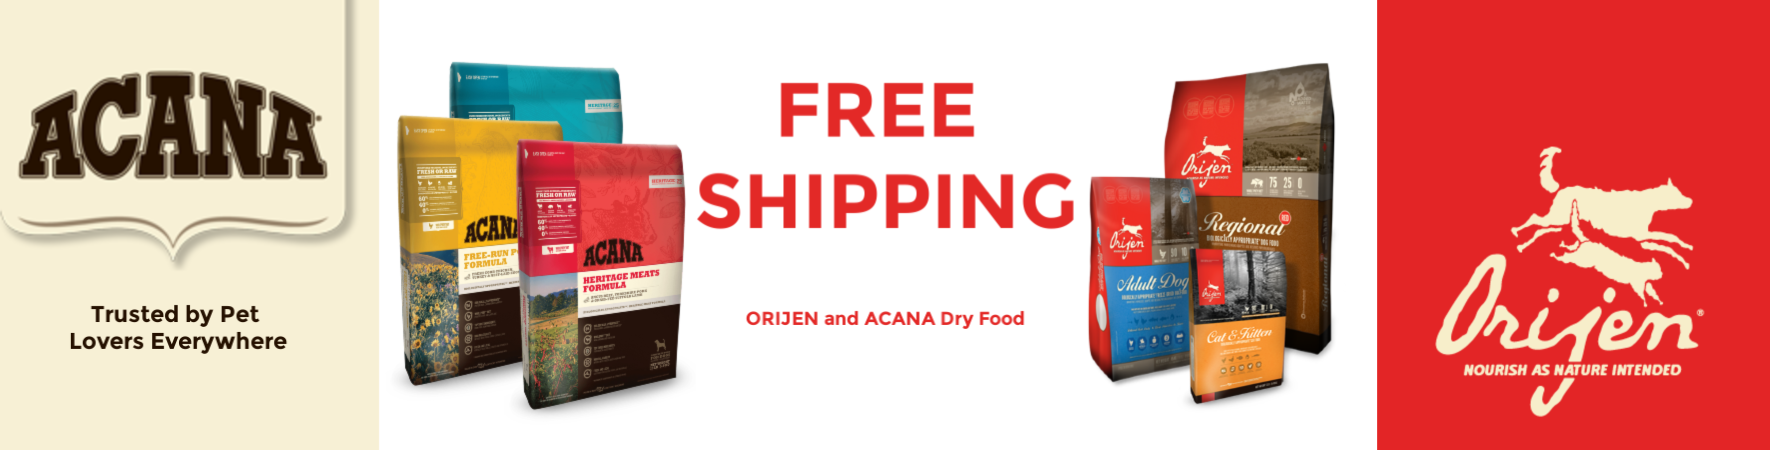 FREE Shipping on ORIJEN and ACANA dry dog and cat foods from Dog Food Direct